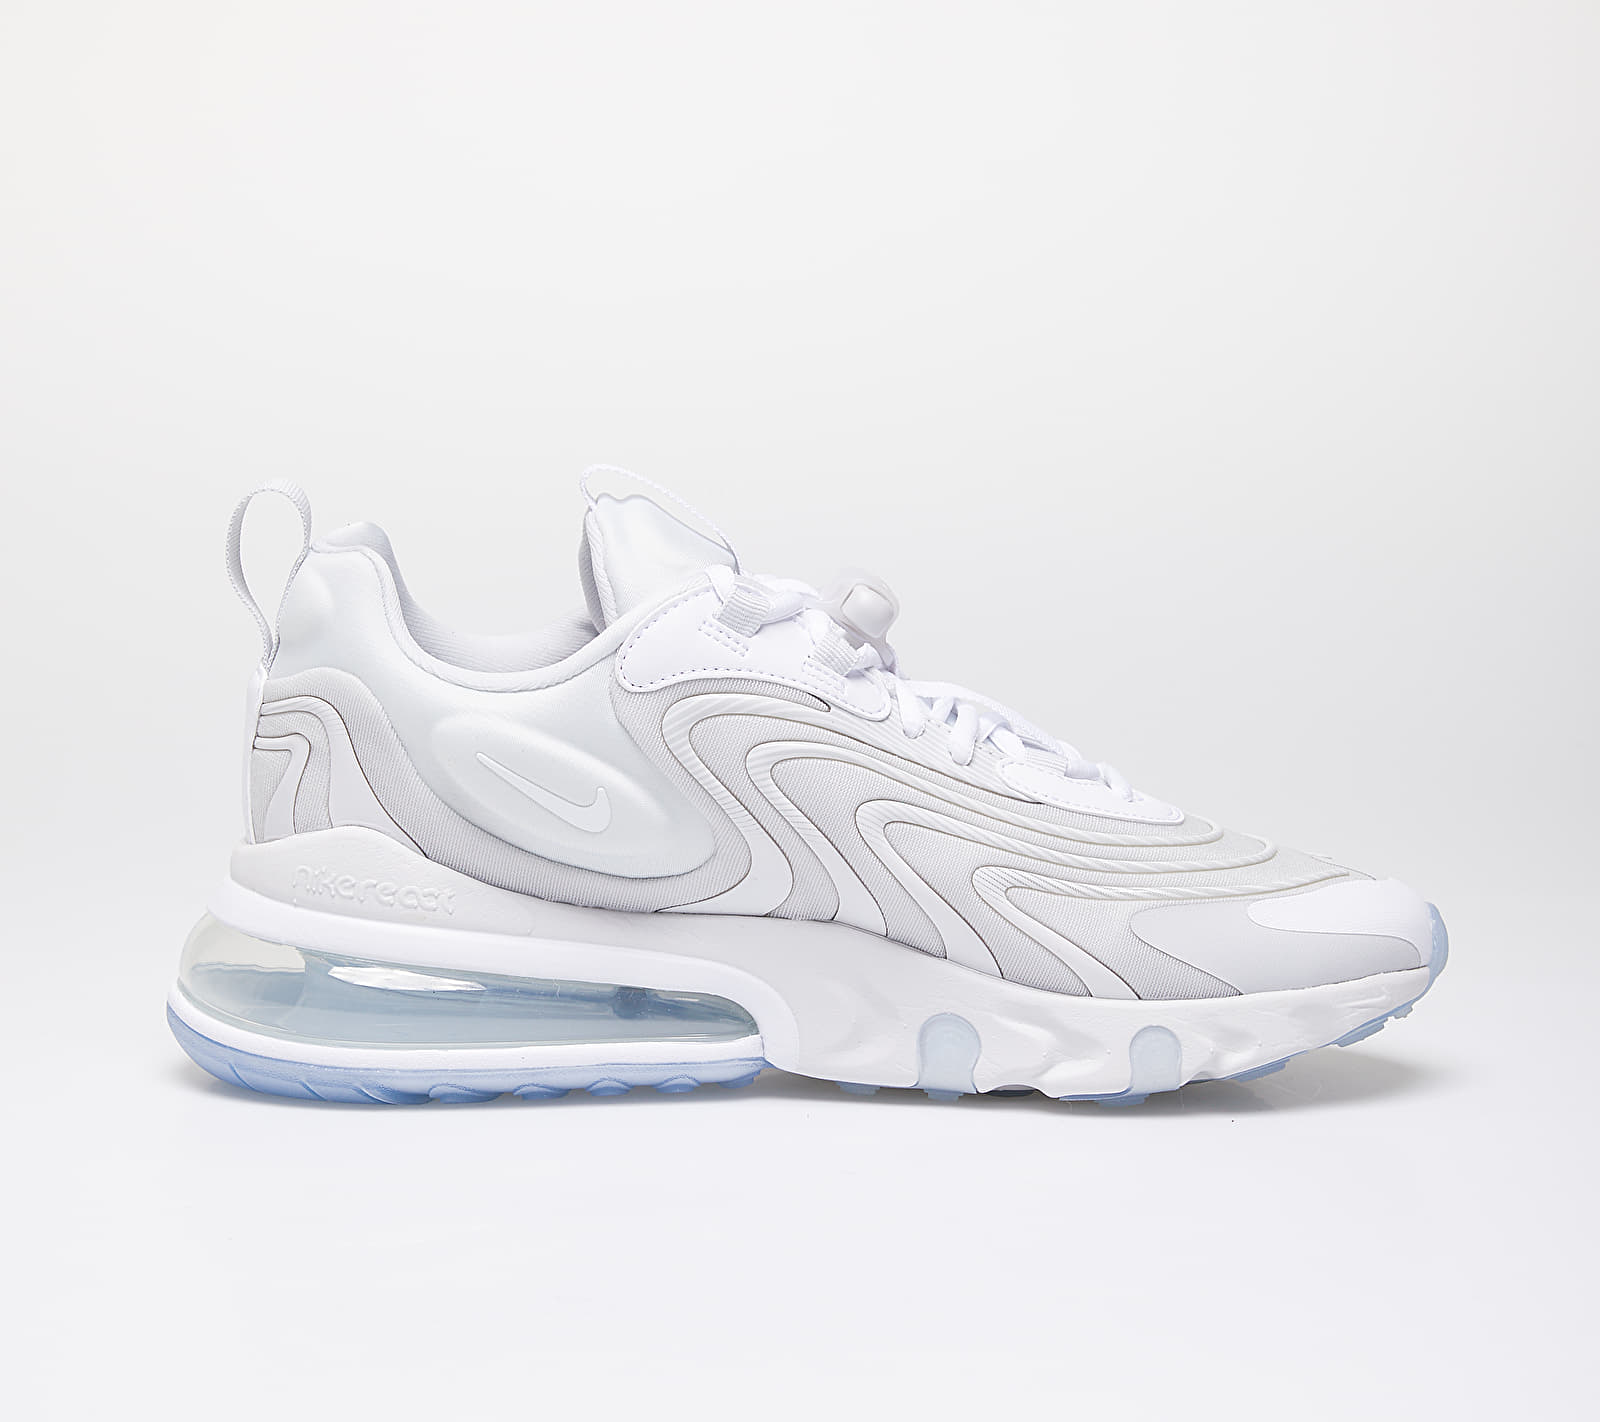 Nike Air Max 270 React Eng Photon Dust/ White-Platinum Tint, Gray